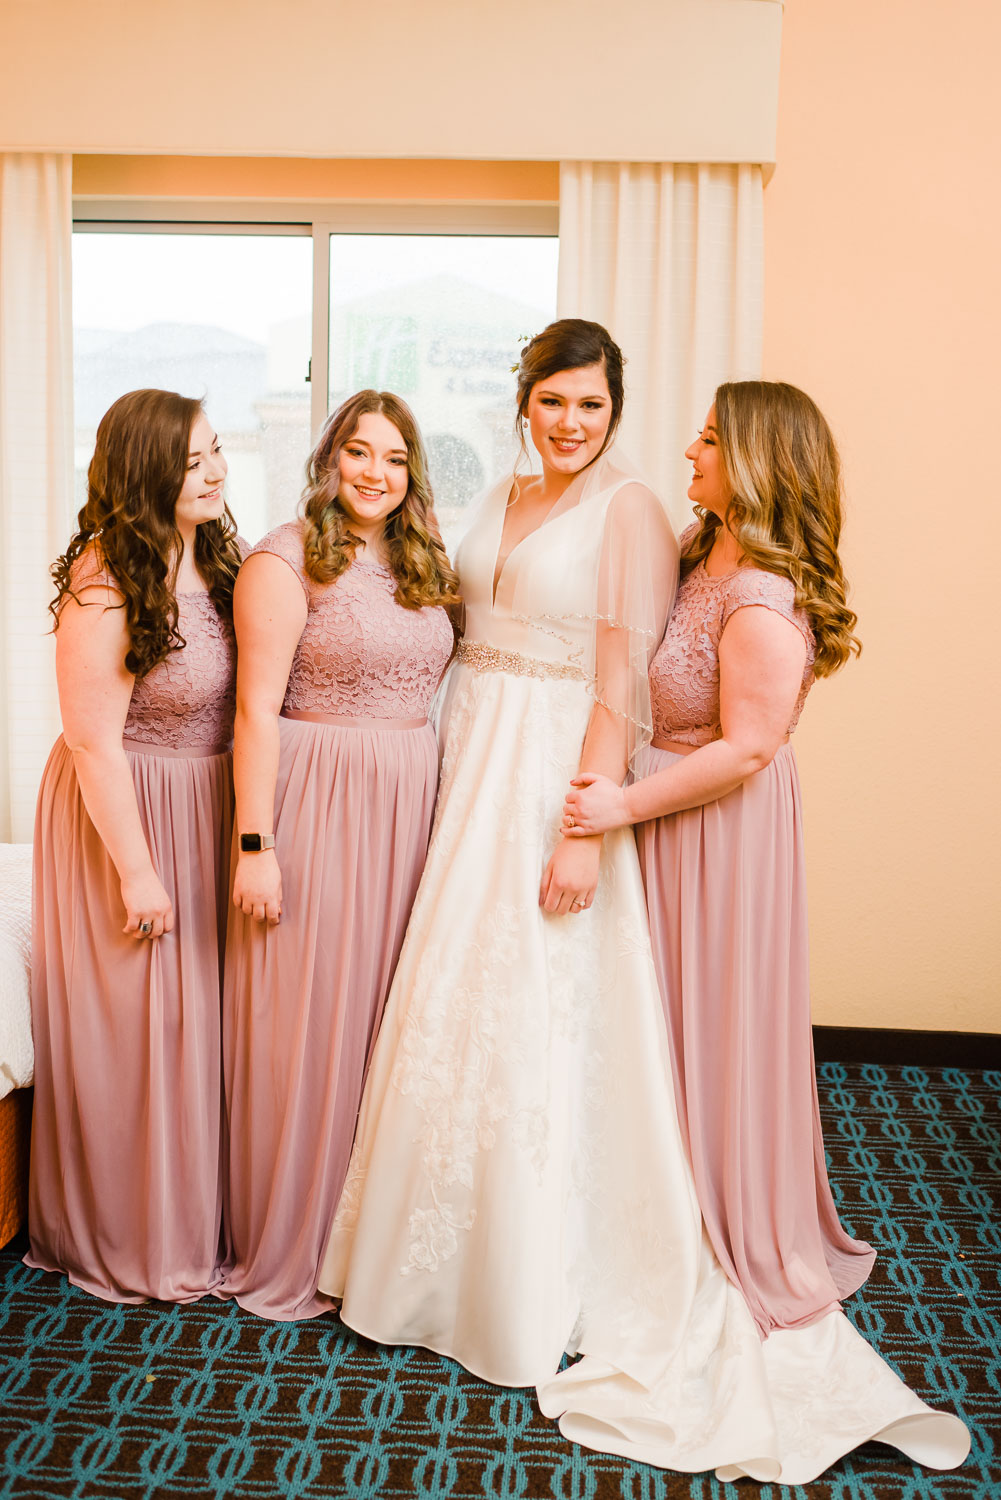 bride and bridesmaids inside a hotel room